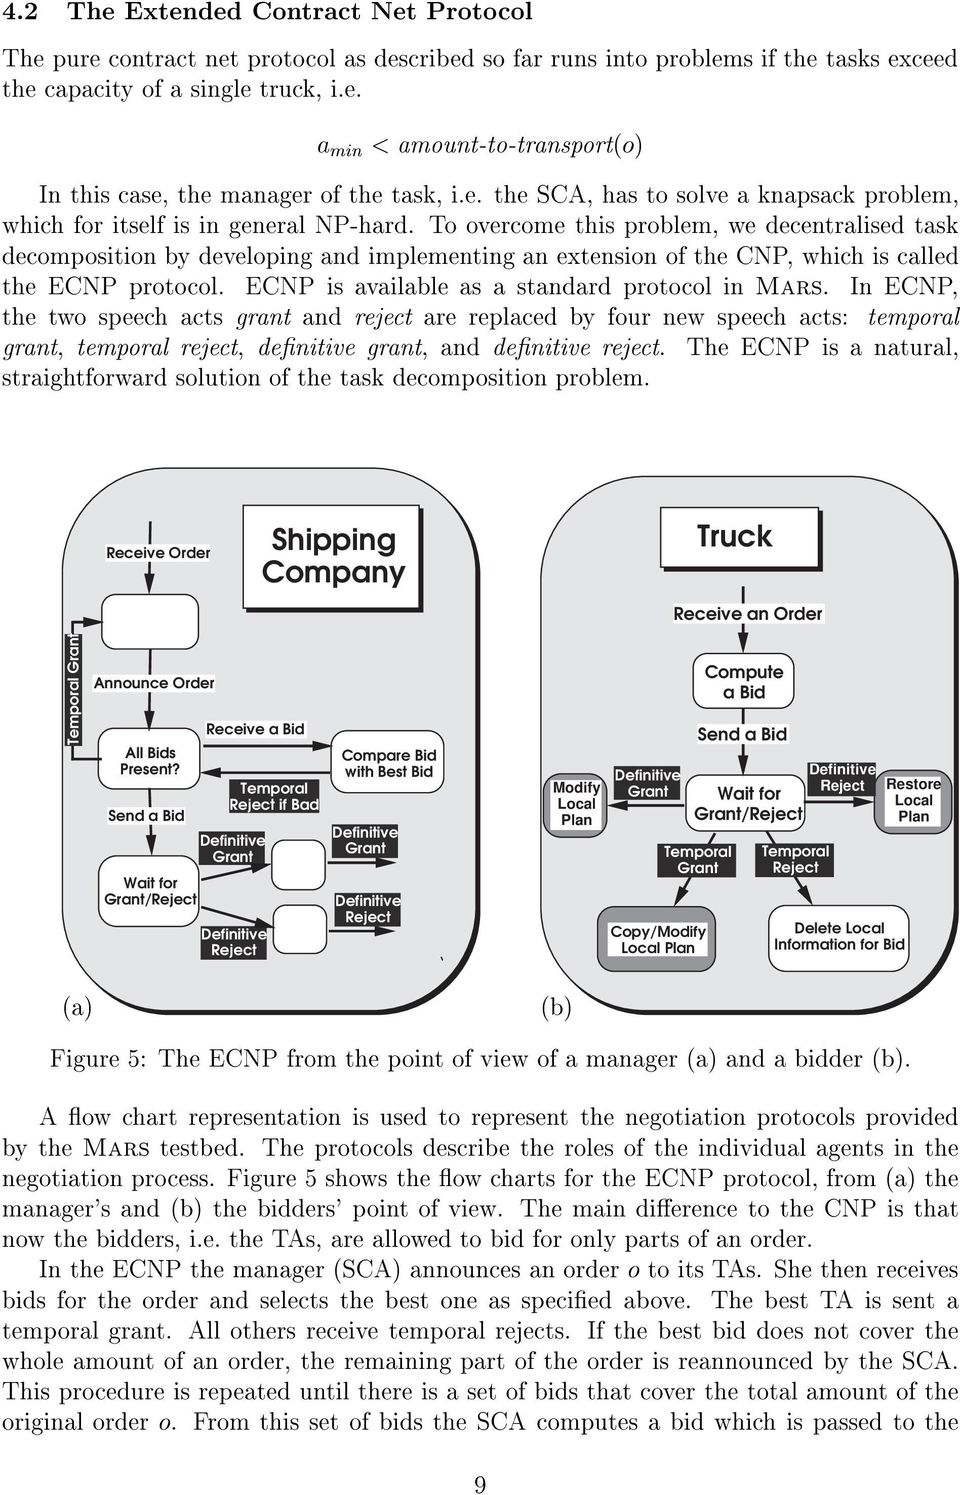 To overcome this problem, we decentralised task decomposition by developing and implementing an extension of the CNP, which iscalled the ECNP protocol.